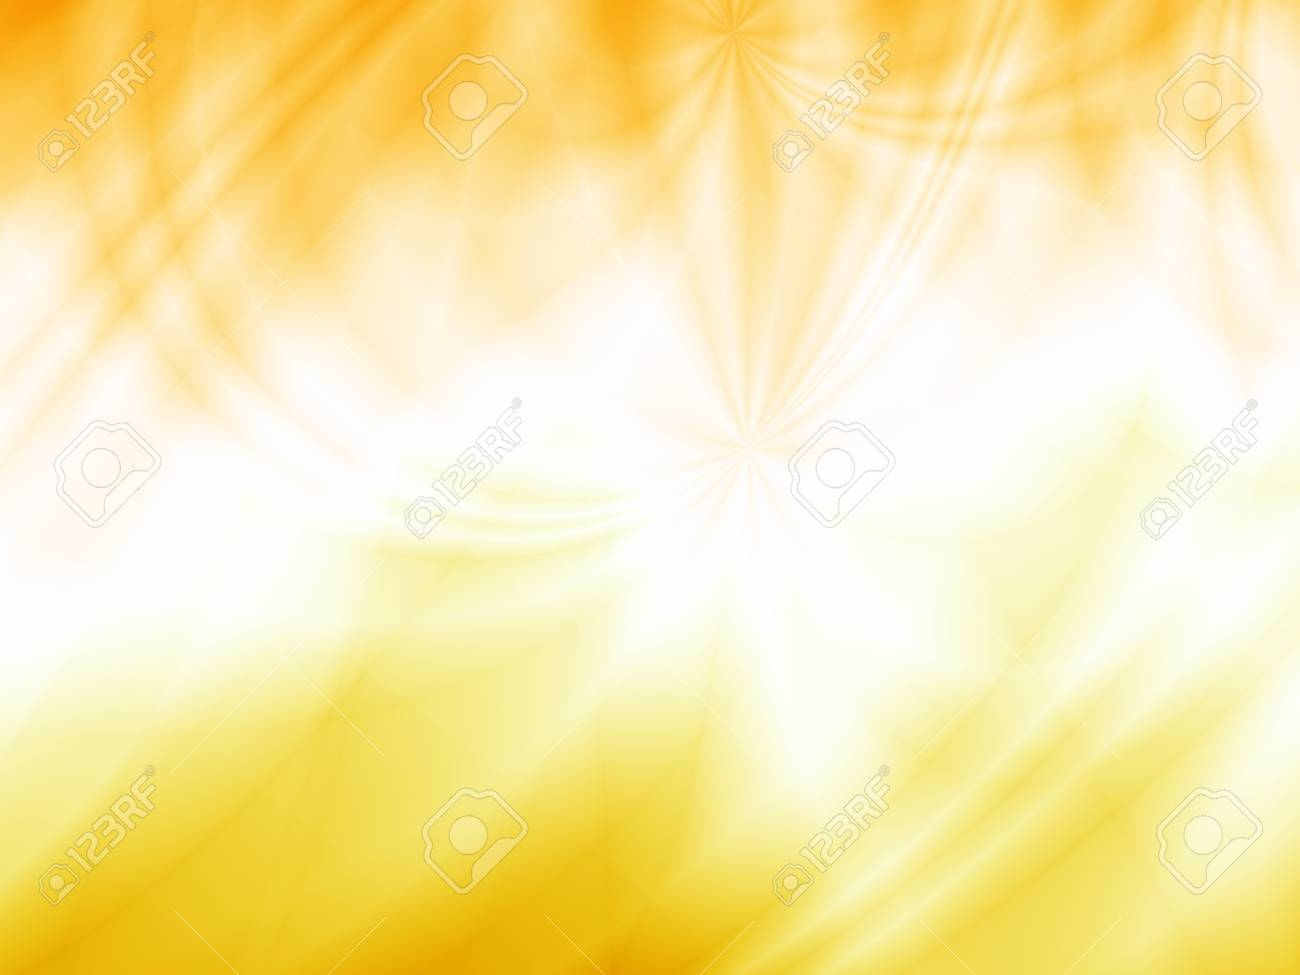 Sunny Abstract Bright Elegant Wallpaper Background